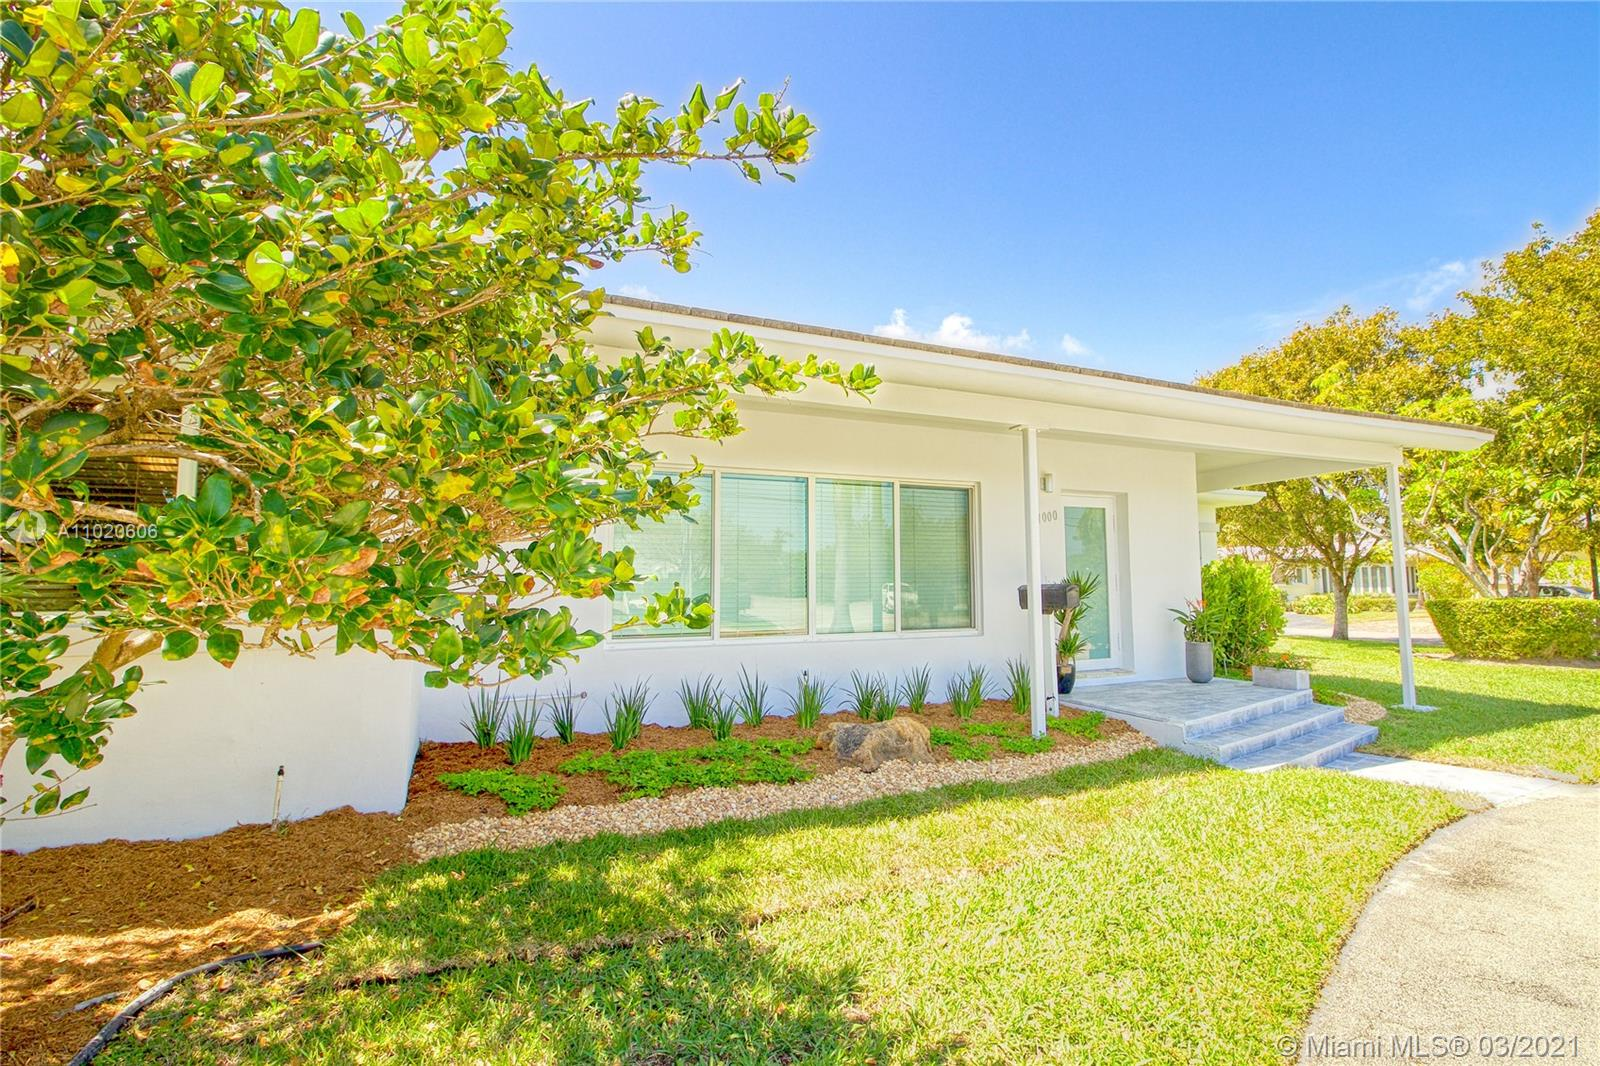 Welcome inside the gated island of Normandy Shores and live in this updated, mid-century modern Miami Beach home. With over 3,000 SF of bright living space, the house has a wide open-floor plan with warm hardwood floors and expansive windows. This family-friendly home bares 4 large bedrooms, including a master suite on one side of the house and second master suite which also doubles as an office. All 3 bathrooms are updated and spa-inspired. Walk in closets in both master suites. Enjoy a spacious white gourmet kitchen. Easy to add outdoor living space. The island is pedestrian-friendly and walking distance to amenities, including an 18-hole PGA golf course, 4 spectacular tennis courts, clubhouse with bar/outdoor restaurant, outdoor gym, playground, basketball courts and soccer field.